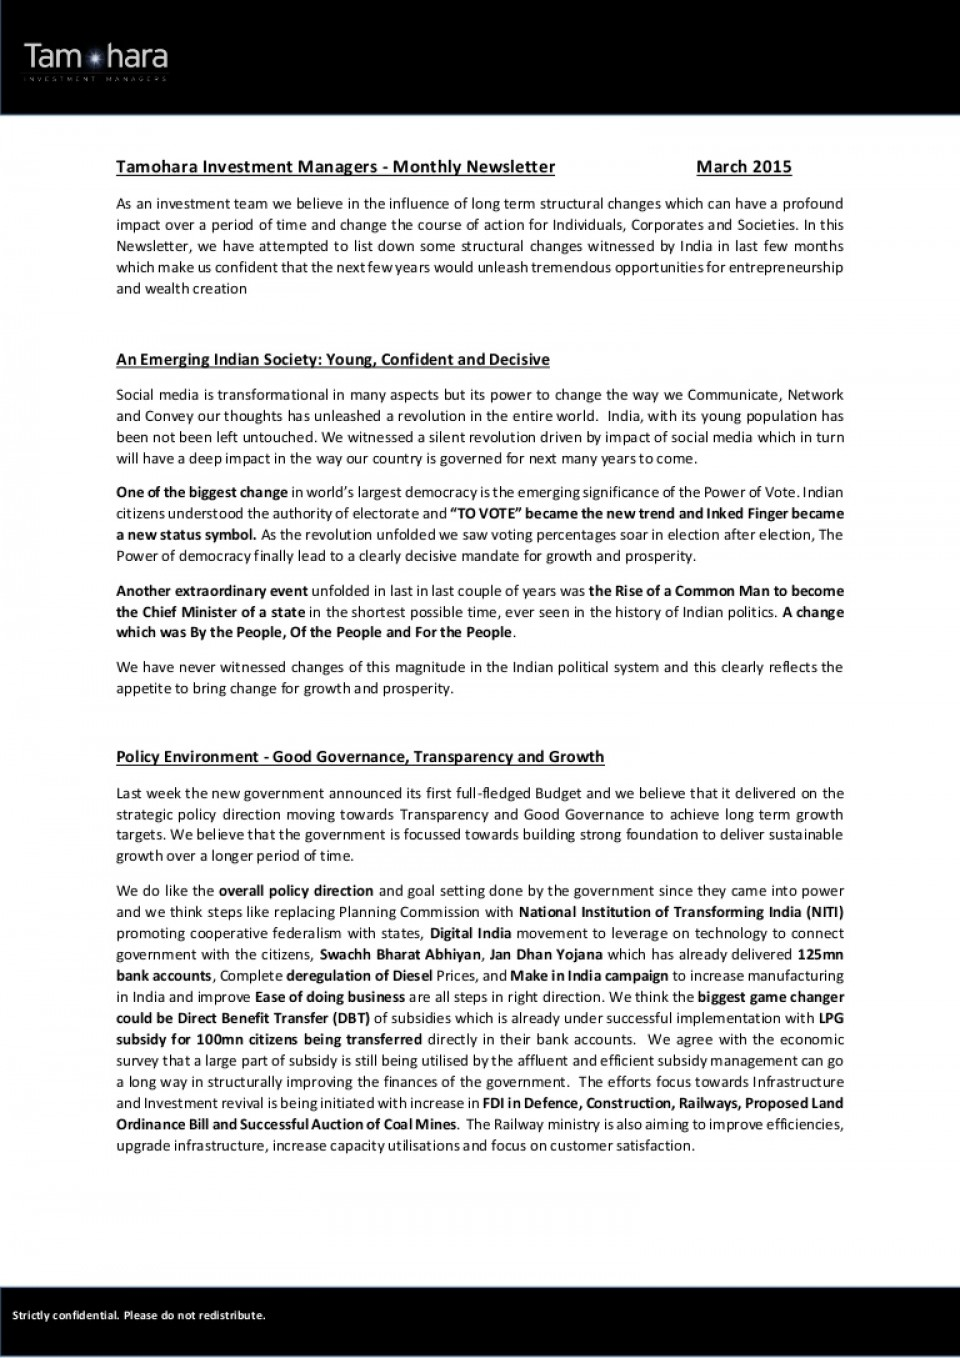 013 Essay Example Tamoharainvestmentnewsletter Mar2015 Conversion Gate01 Thumbnail How To Make Outstanding A Longer An Period Trick Mac On Google Docs My Generator 960